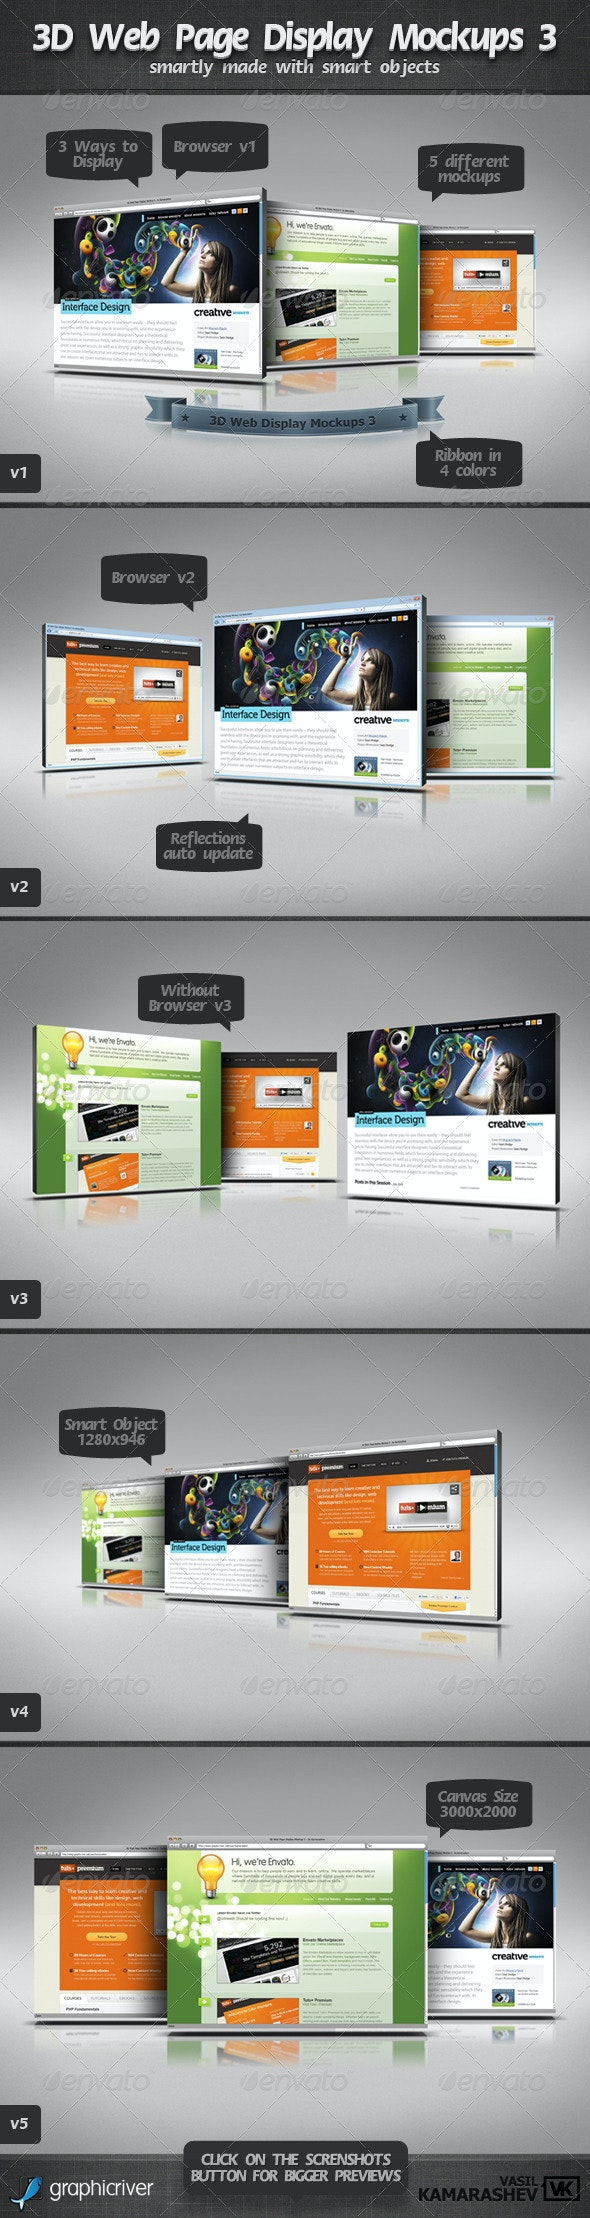 3D Web Page Display Mockups 3 - Website Displays